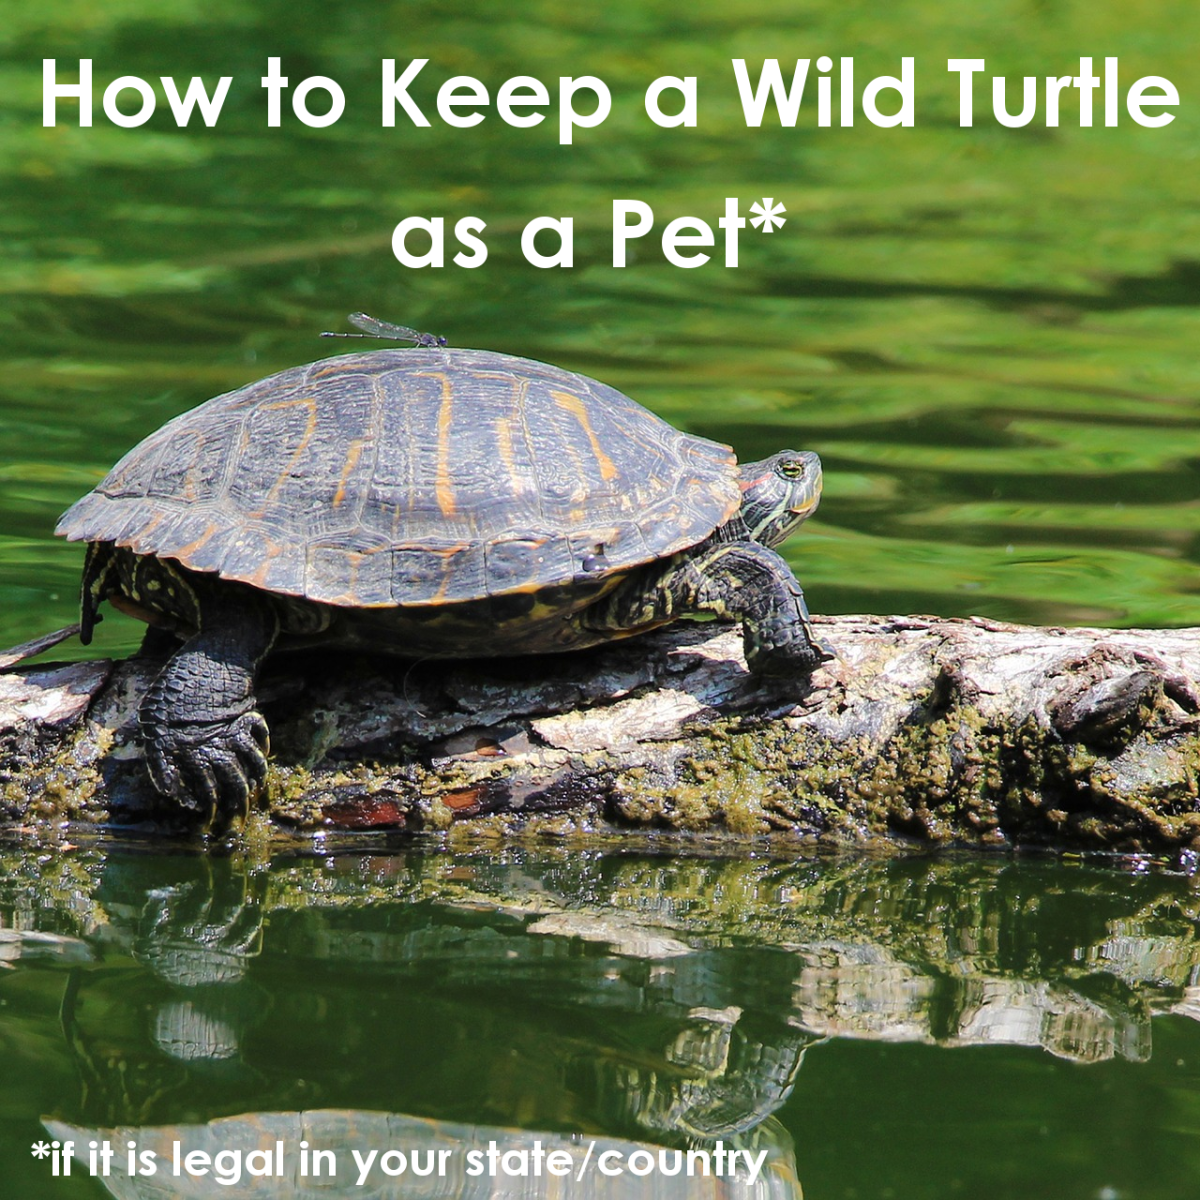 How to Keep a Wild Turtle as a Pet